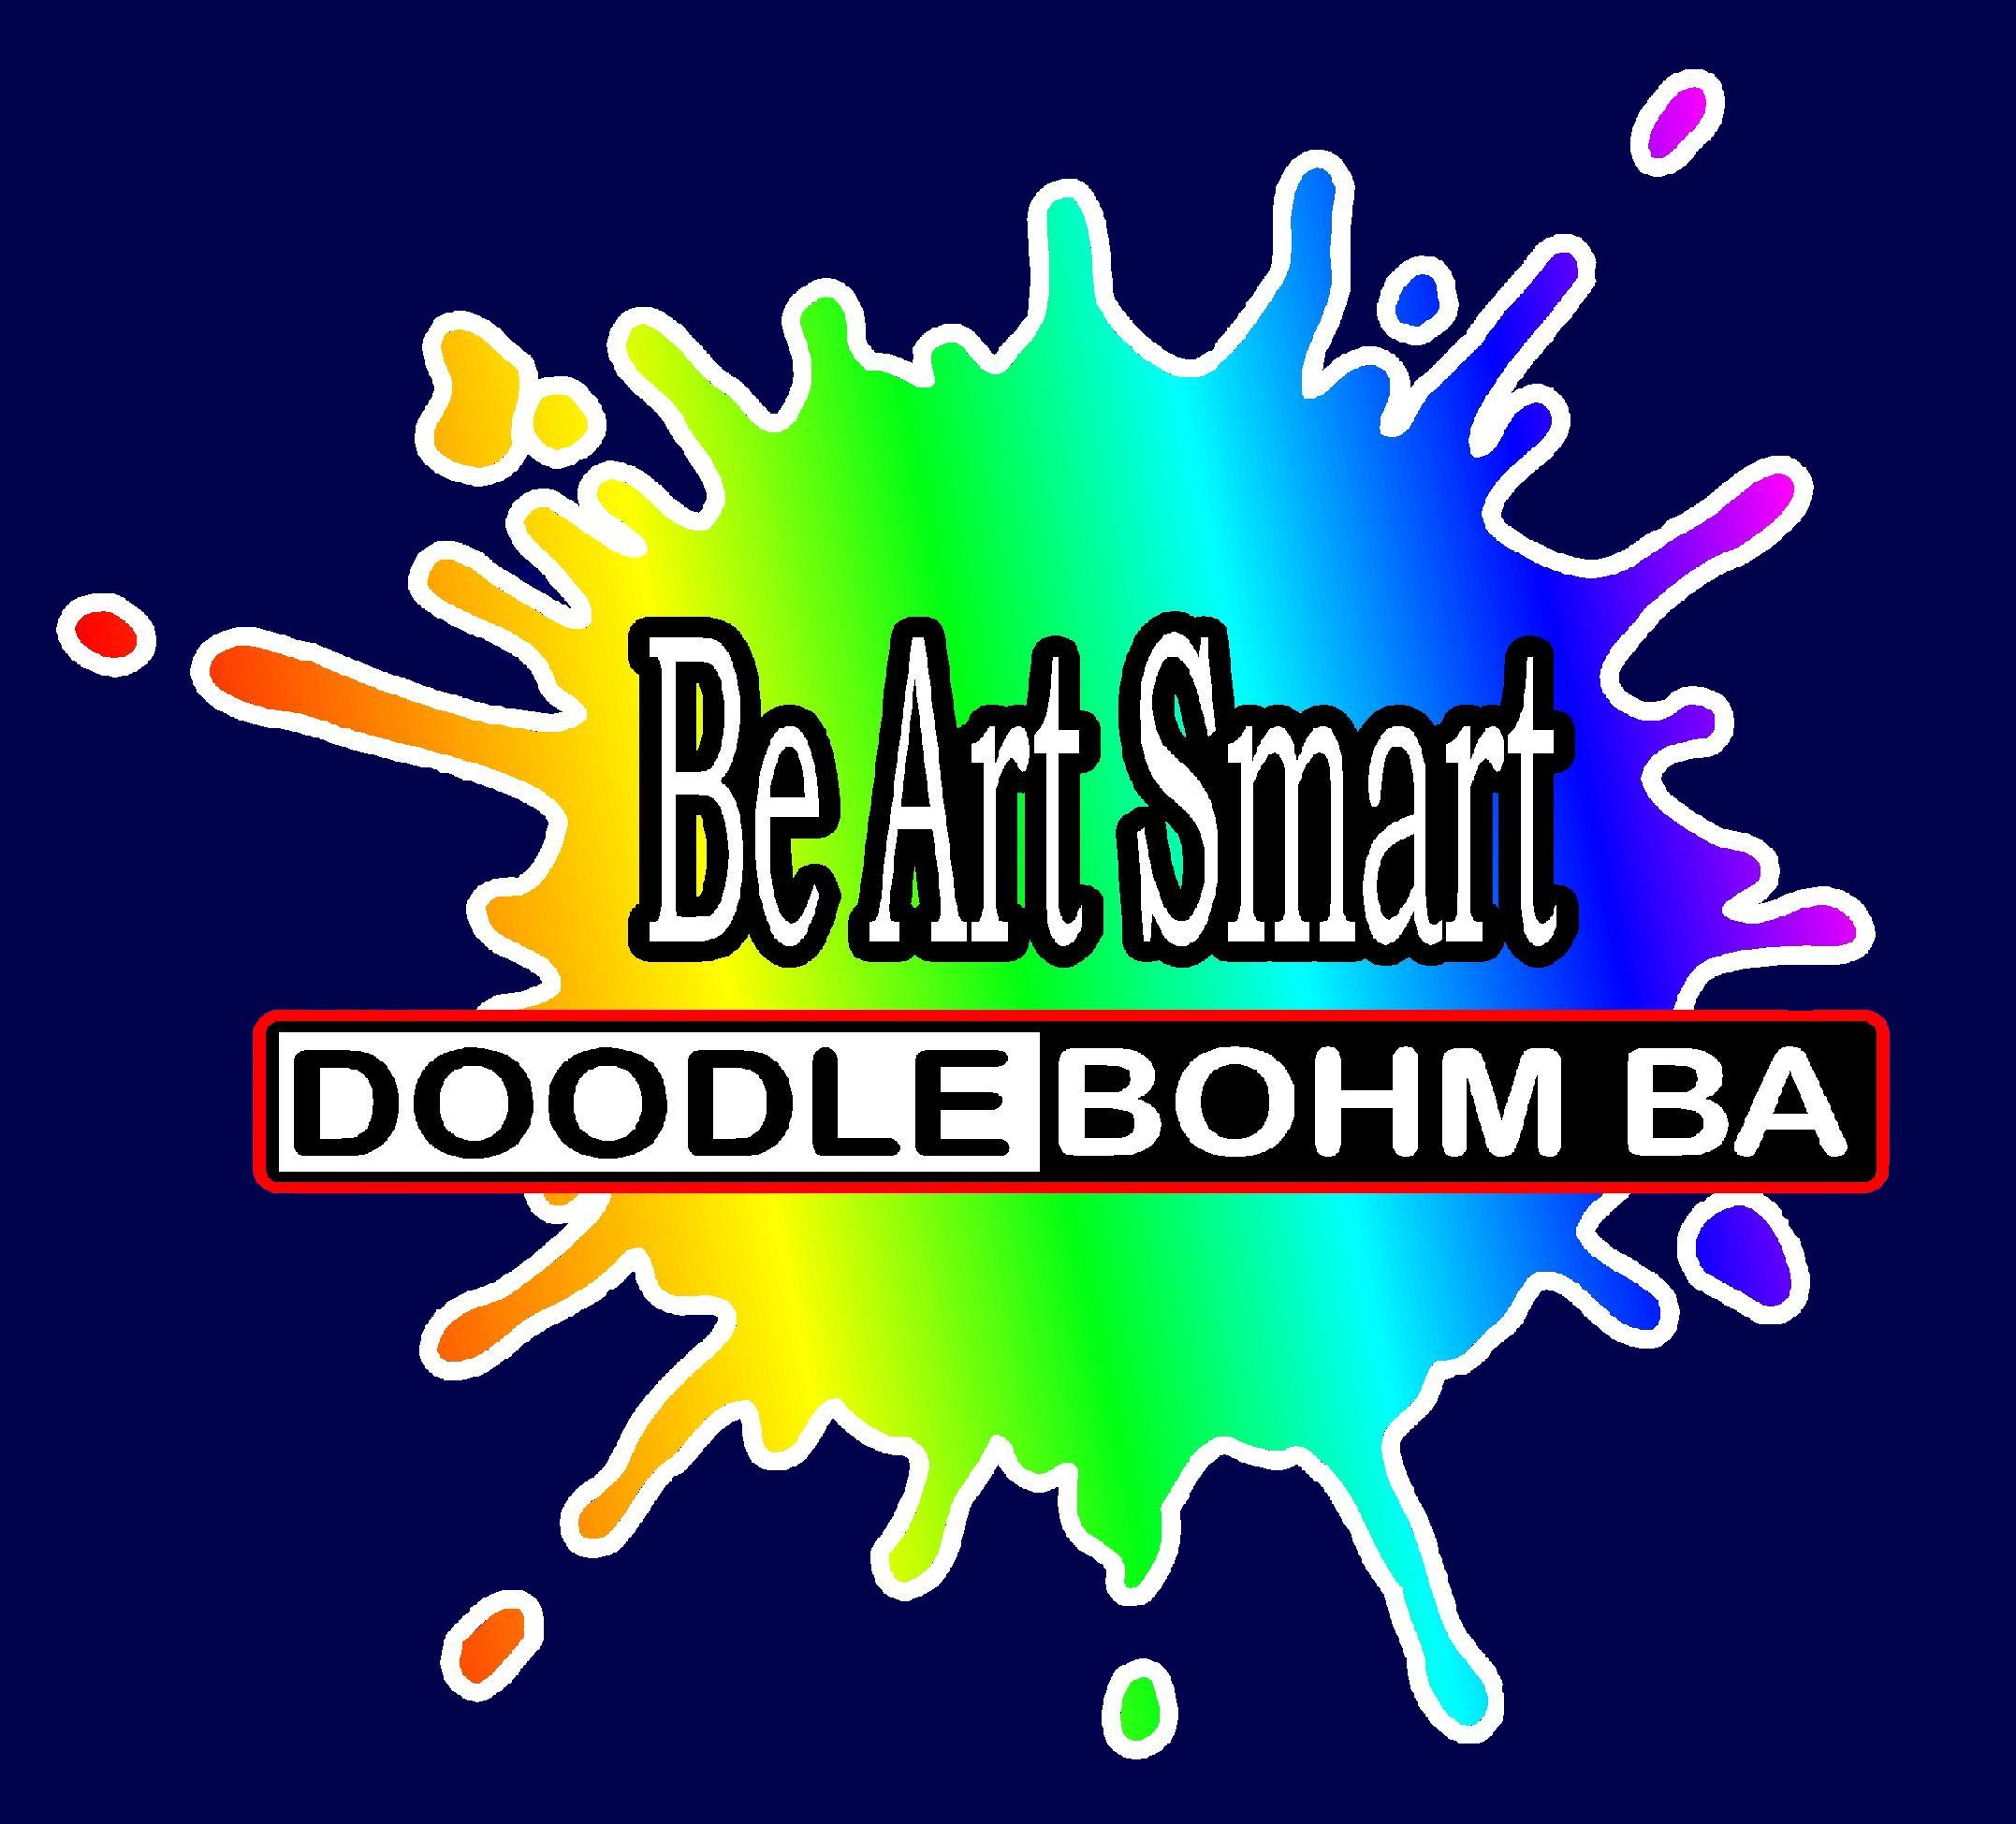 Doodlebohmba Instructor Certification Tcc Doodlebohmba